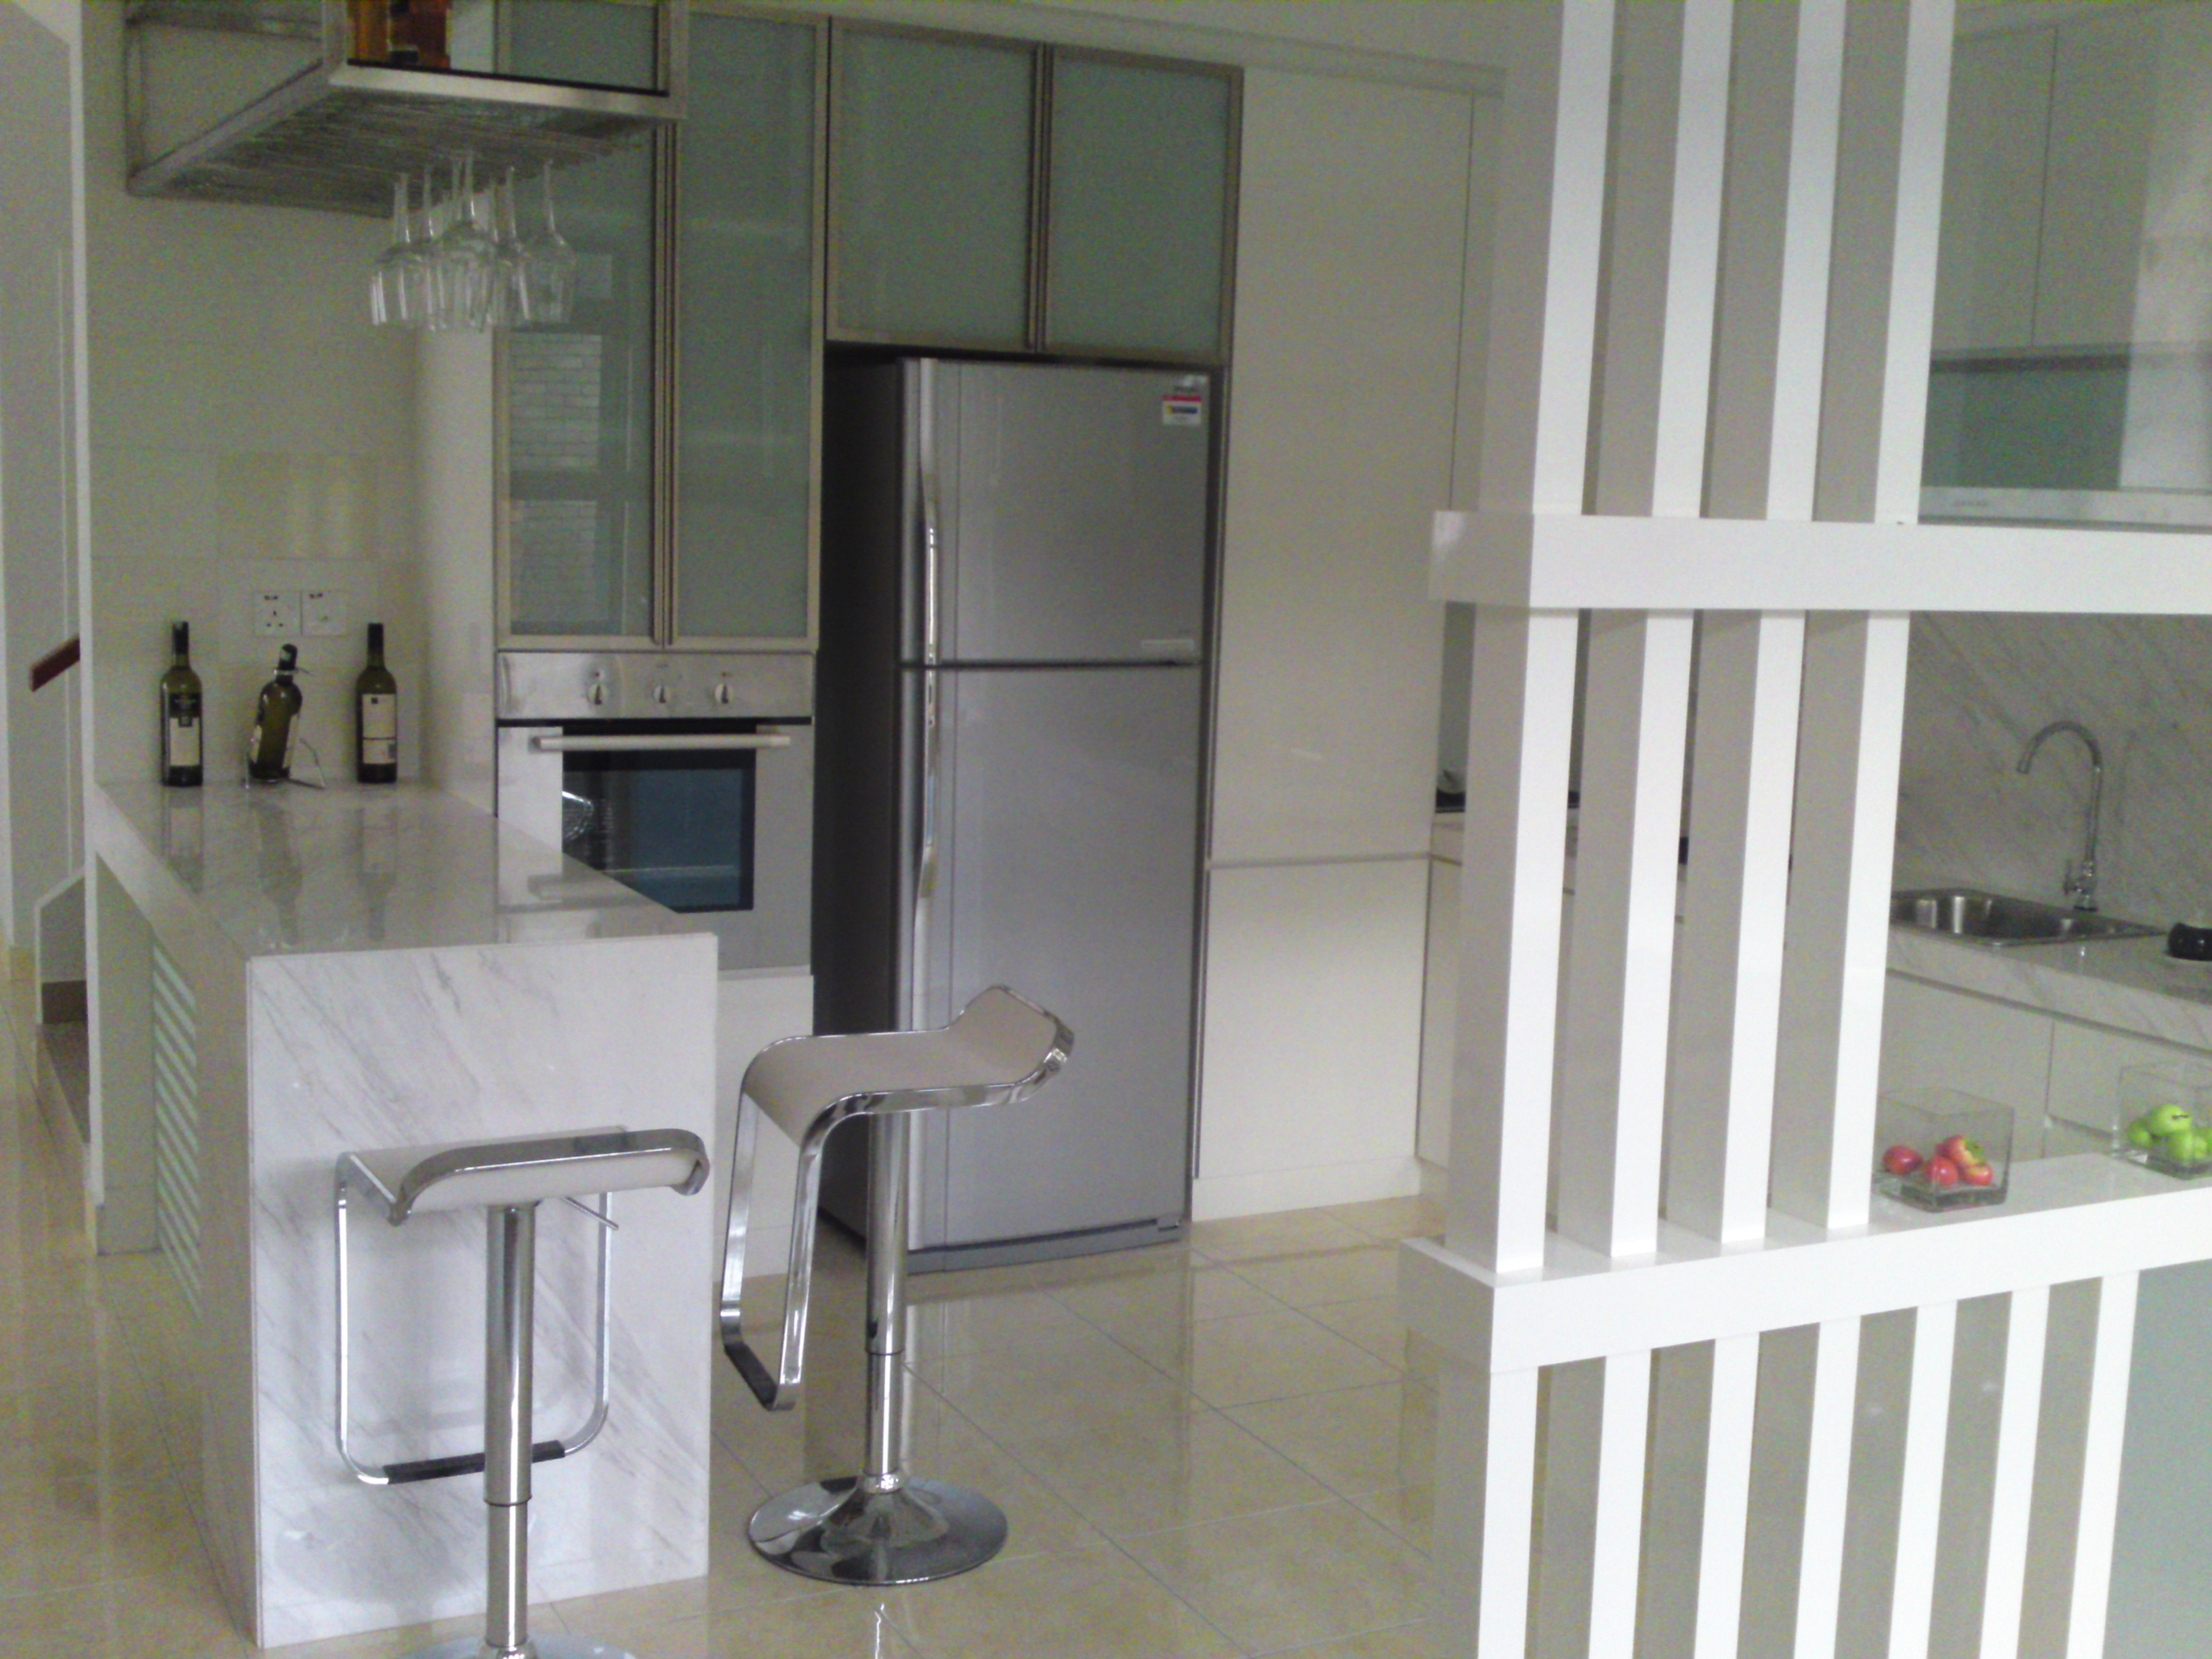 Kitchen Cabinet With Bar Counter LKY Renovation Works